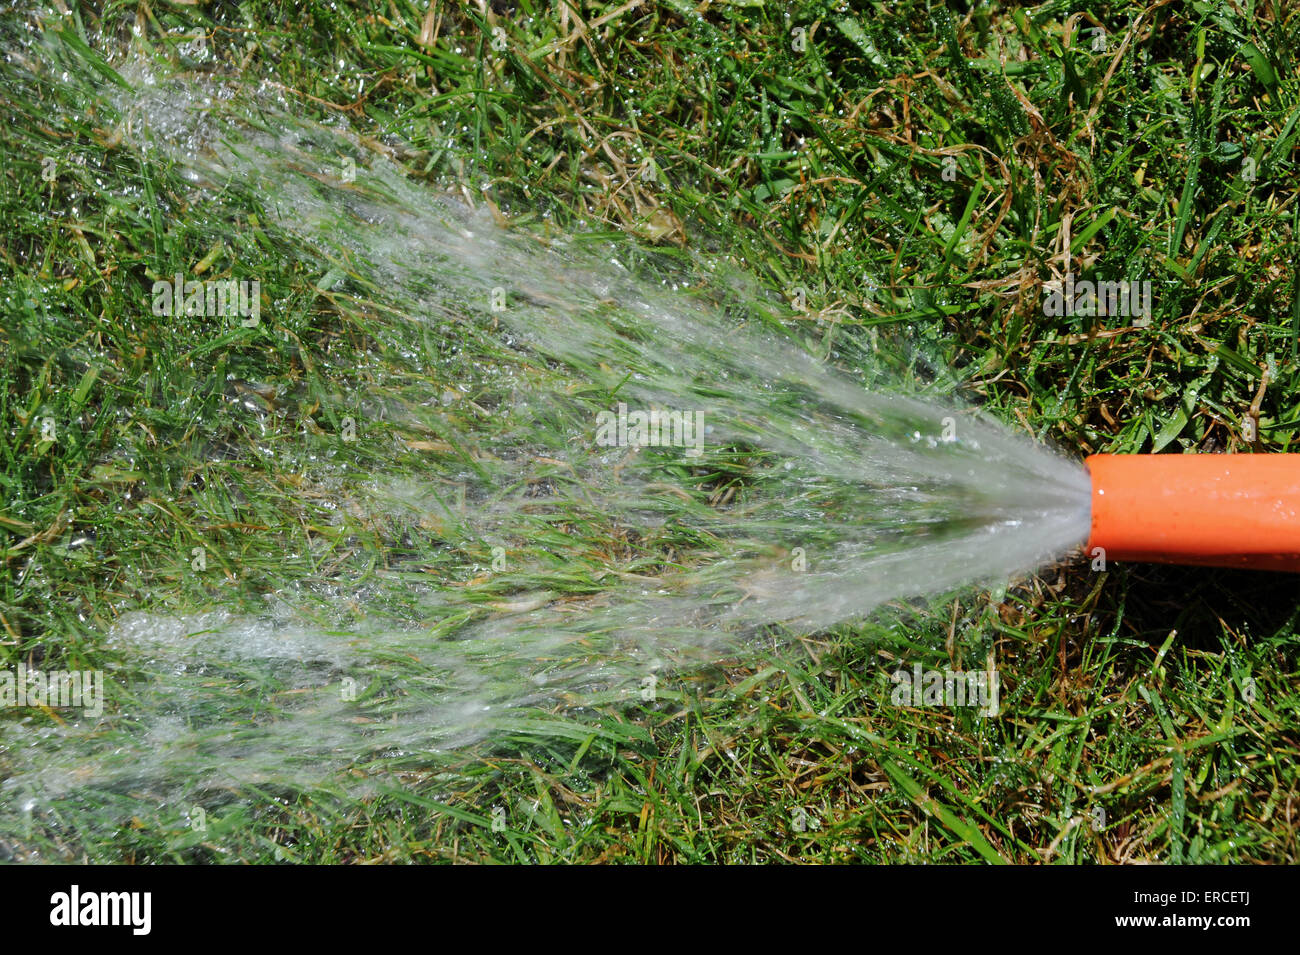 Wasting water garden hose left running on grass lawn - Stock Image